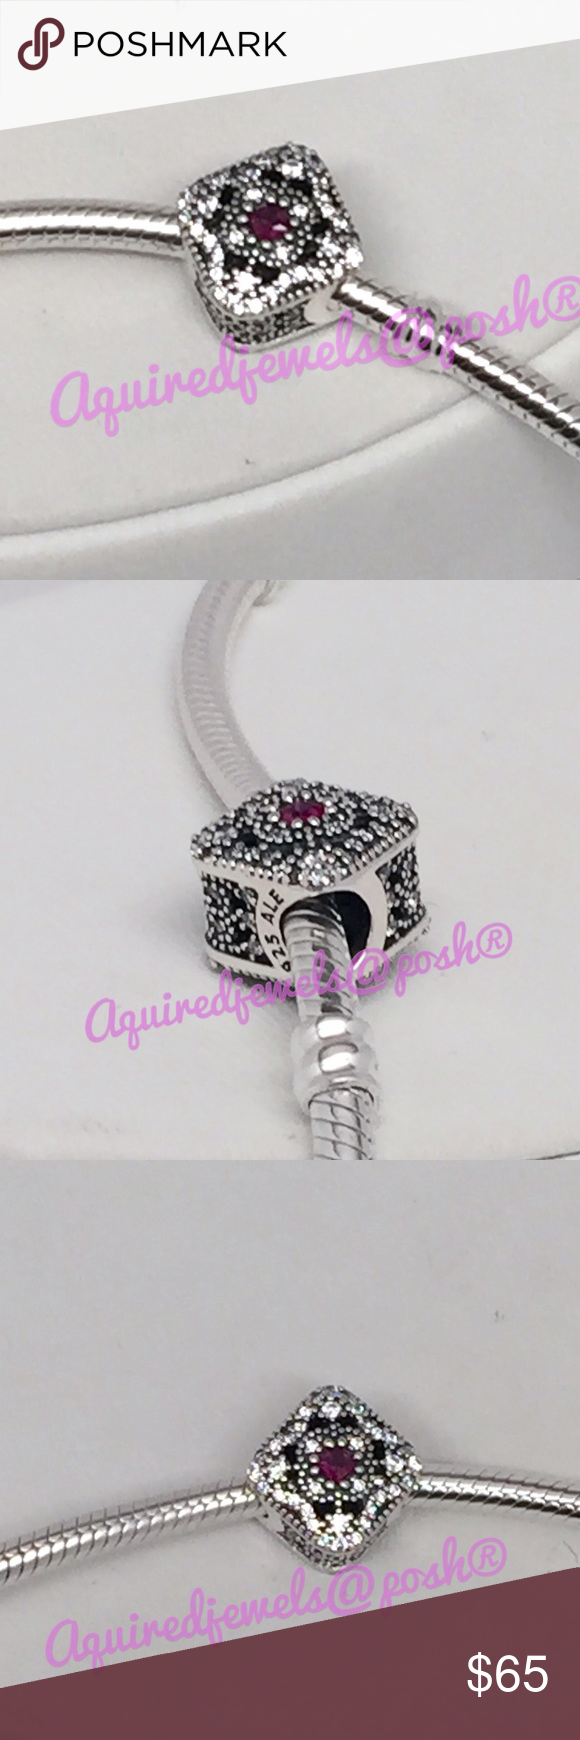 New Pandora Fairytale Treasure Charm This is a Brand New Authentic Pandora Charm.  This Brand New Item Comes in Pandora Pouches or Pandora Paper Folding Box.   All Hallmarked and properly stamped.  If any questions or concerns please drop me a note.   Yes I Bundle too!!  Pandora Hard Box Sold Separately $3.00  Thanks and Happy Shopping.   Oh, if you need anything special just let me know and I will do my best to get you what you want. Pandora Jewelry Bracelets